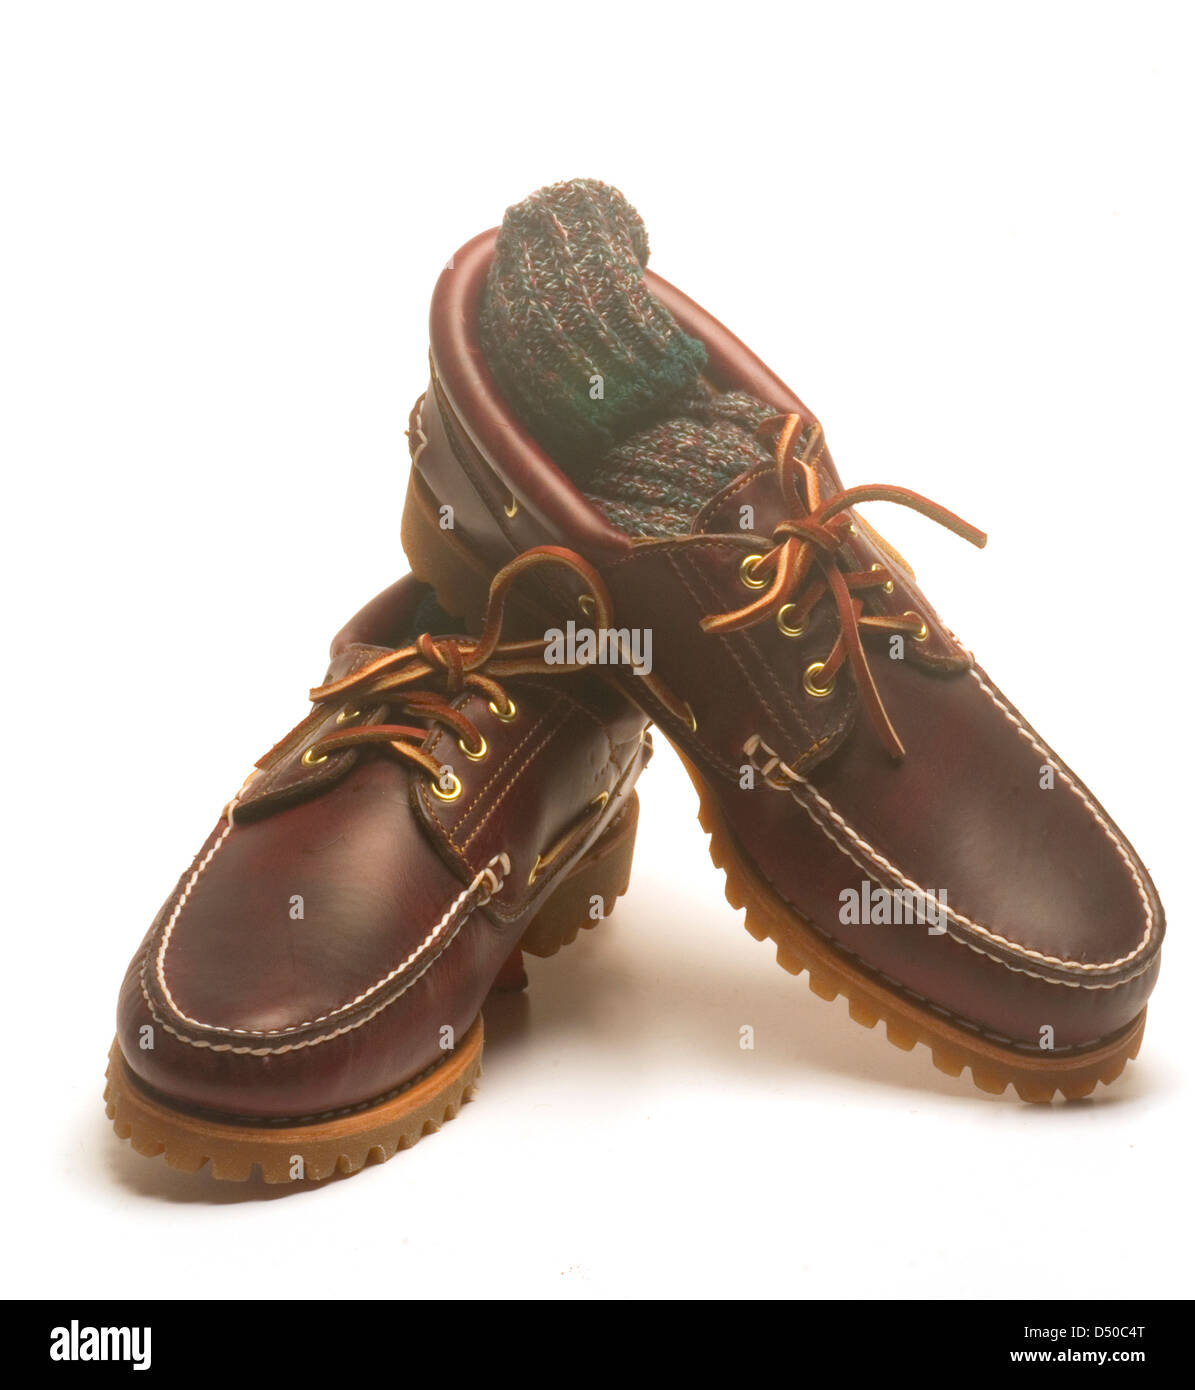 casual rugged moccasin style men